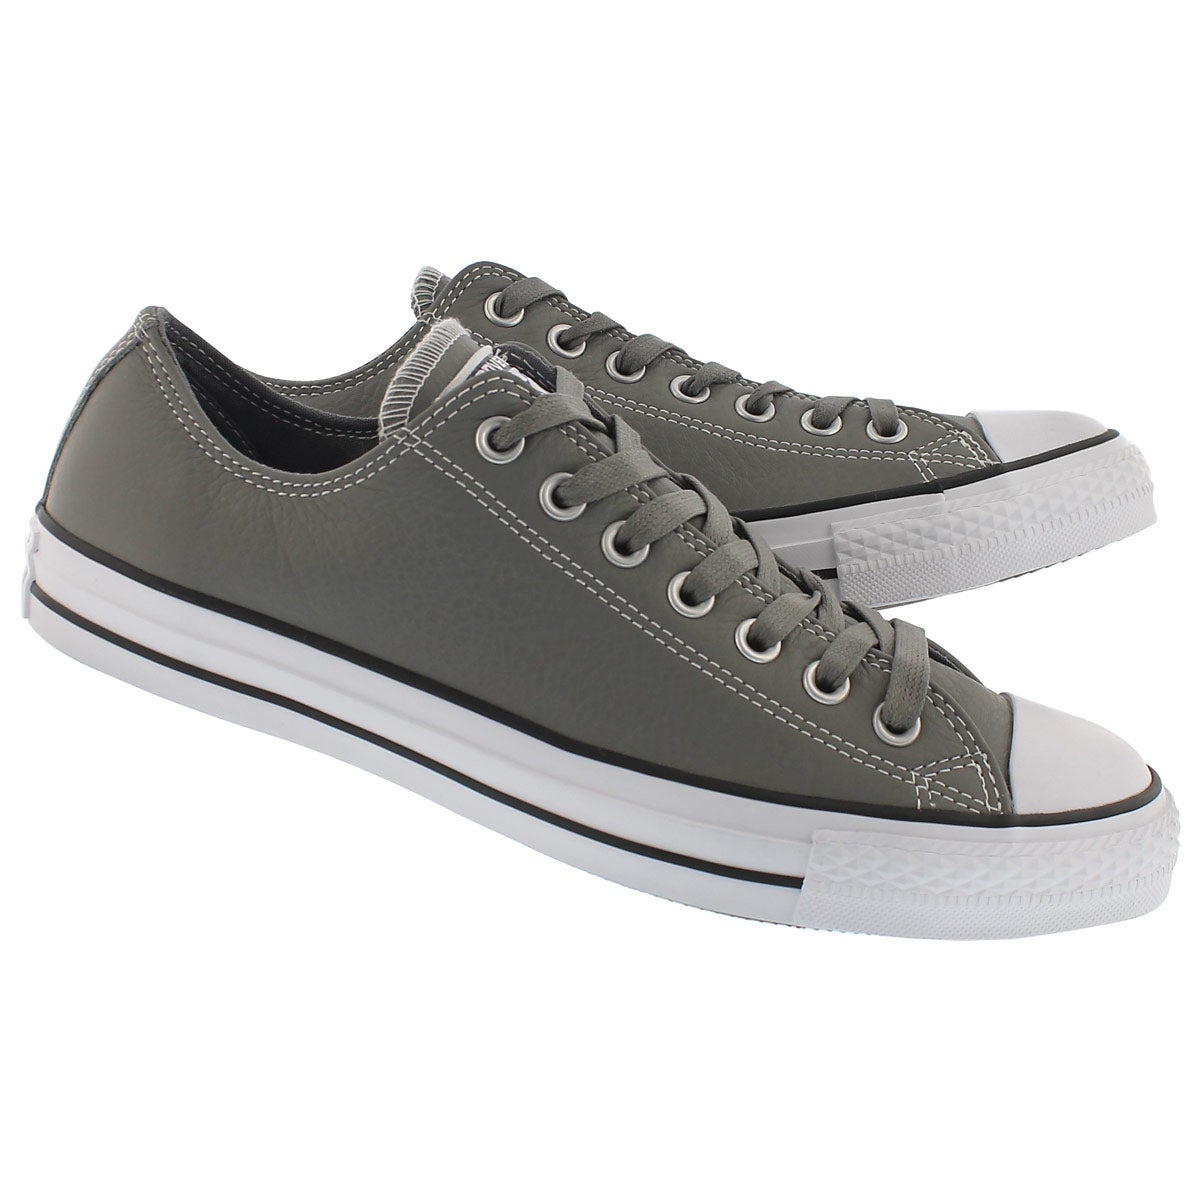 Mns CT All Star Leather Ox grey sneaker